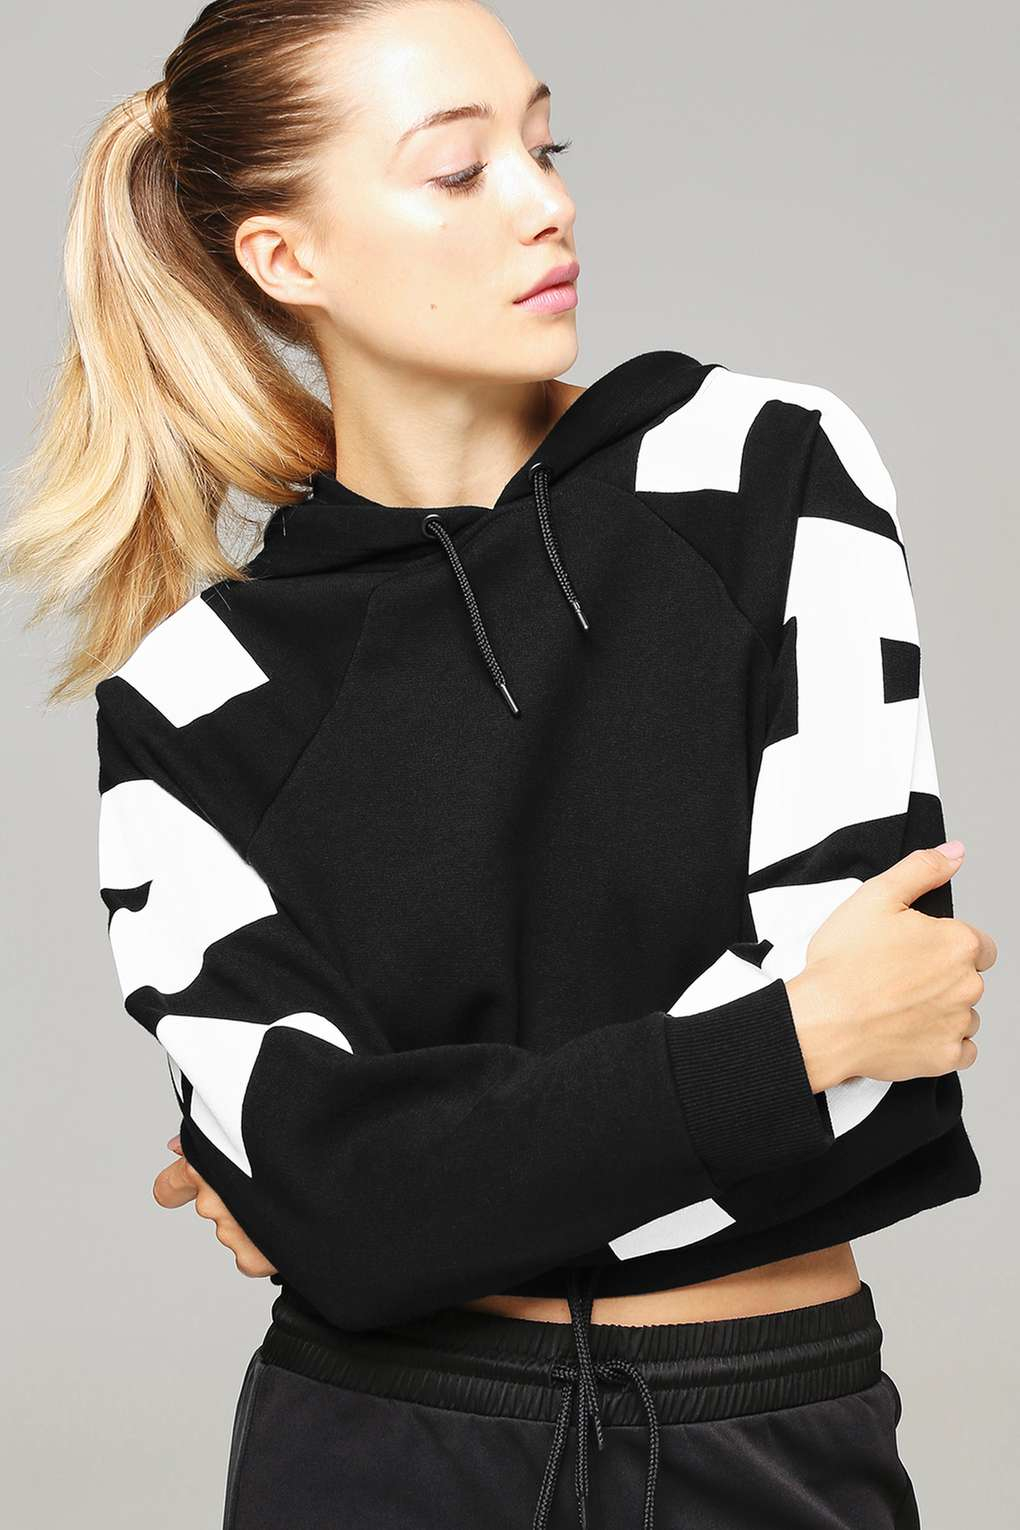 topshop logo sleeve cropped hoodie by ivy park in black lyst. Black Bedroom Furniture Sets. Home Design Ideas